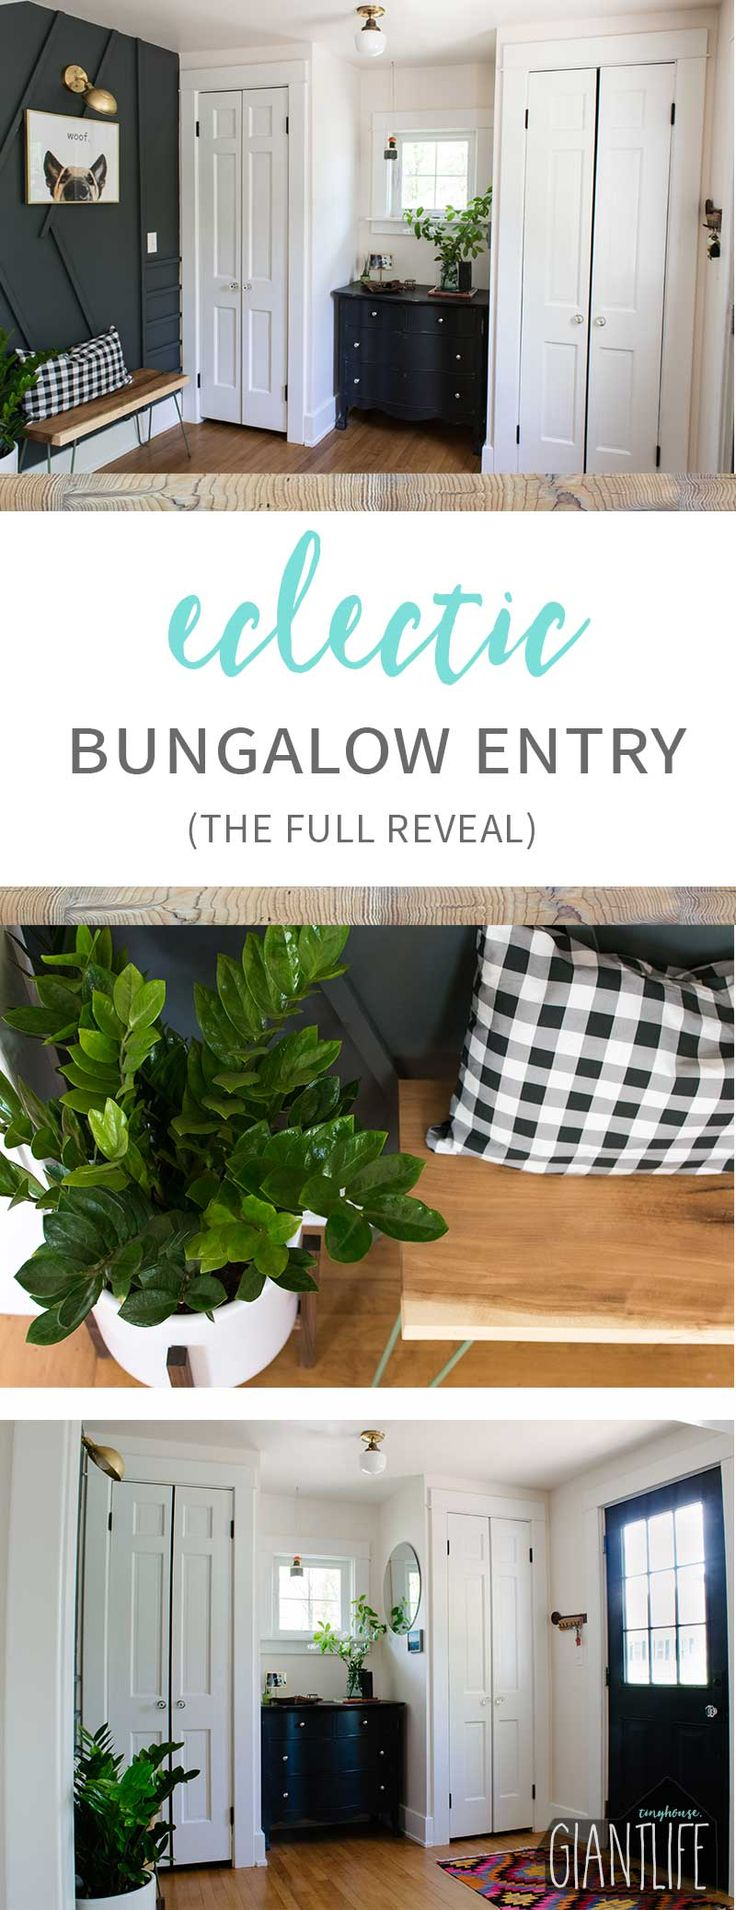 Eclectic Bungalow Entry Reveal | One Room Challenge Week 6 - Tiny House Giant Life